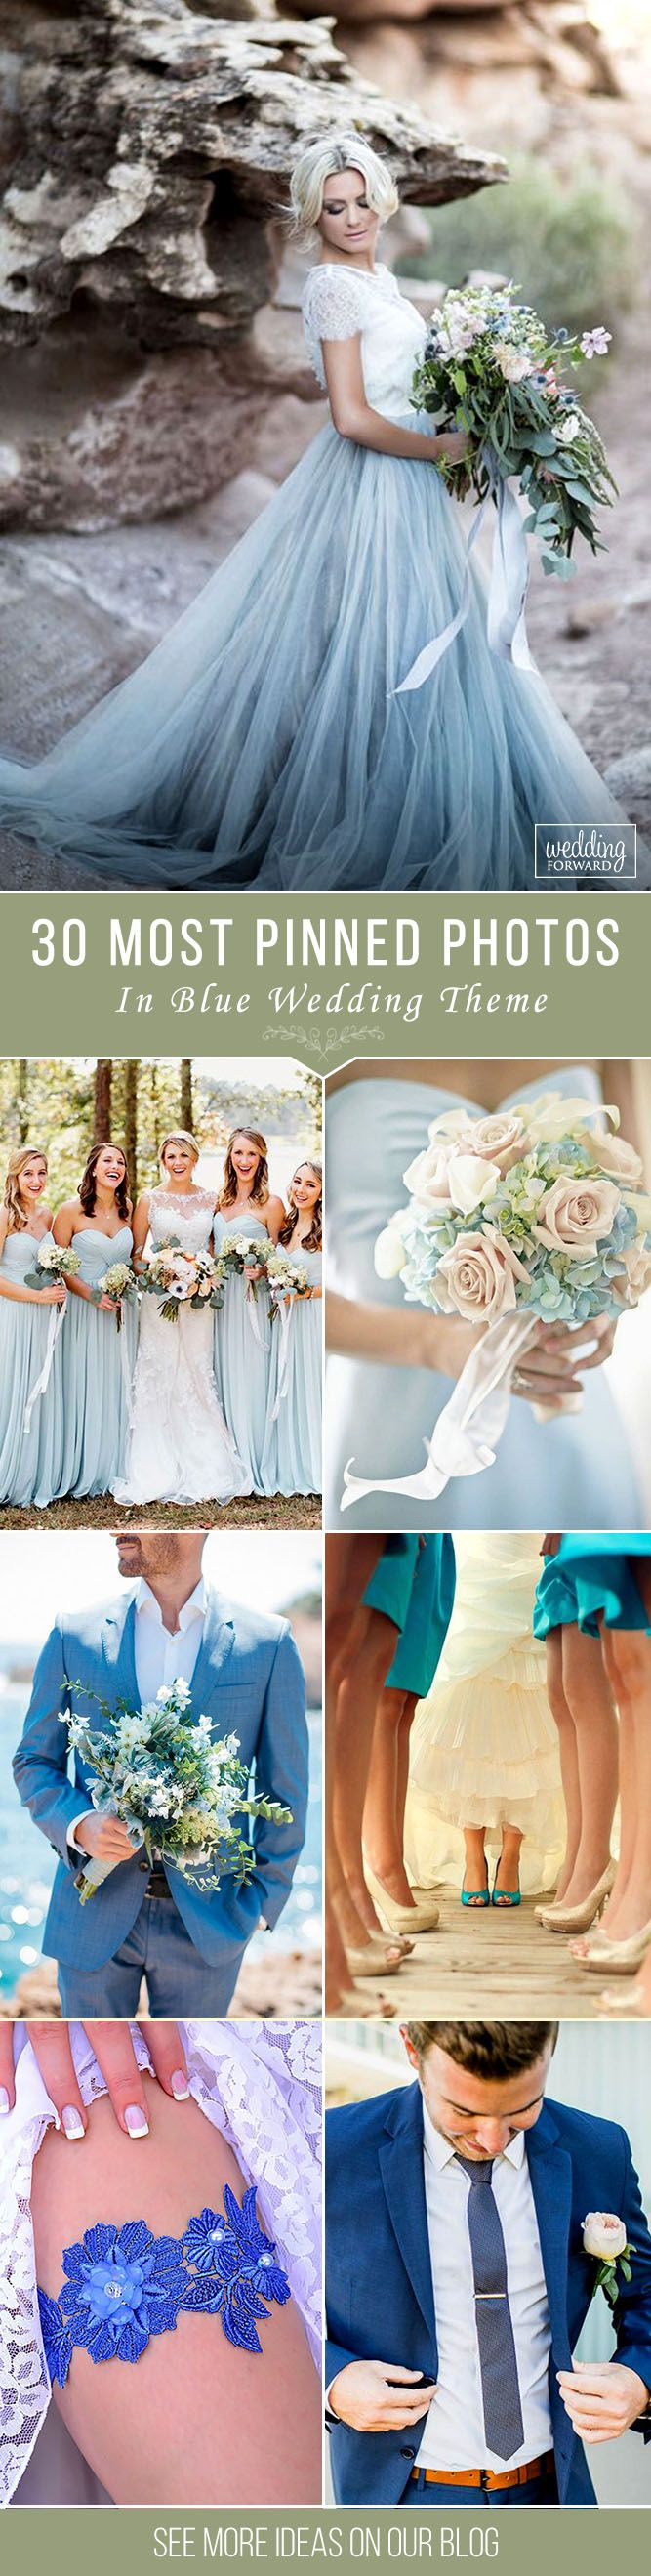 30 Most Pinned Photos In Blue Wedding Theme ❤ The blue wedding theme is a great opportunity to add brilliance to your celebration. Look up the most popular blue wedding ideas. See more: http://www.weddingforward.com/blue-wedding-theme/ ‎#wedding #photography